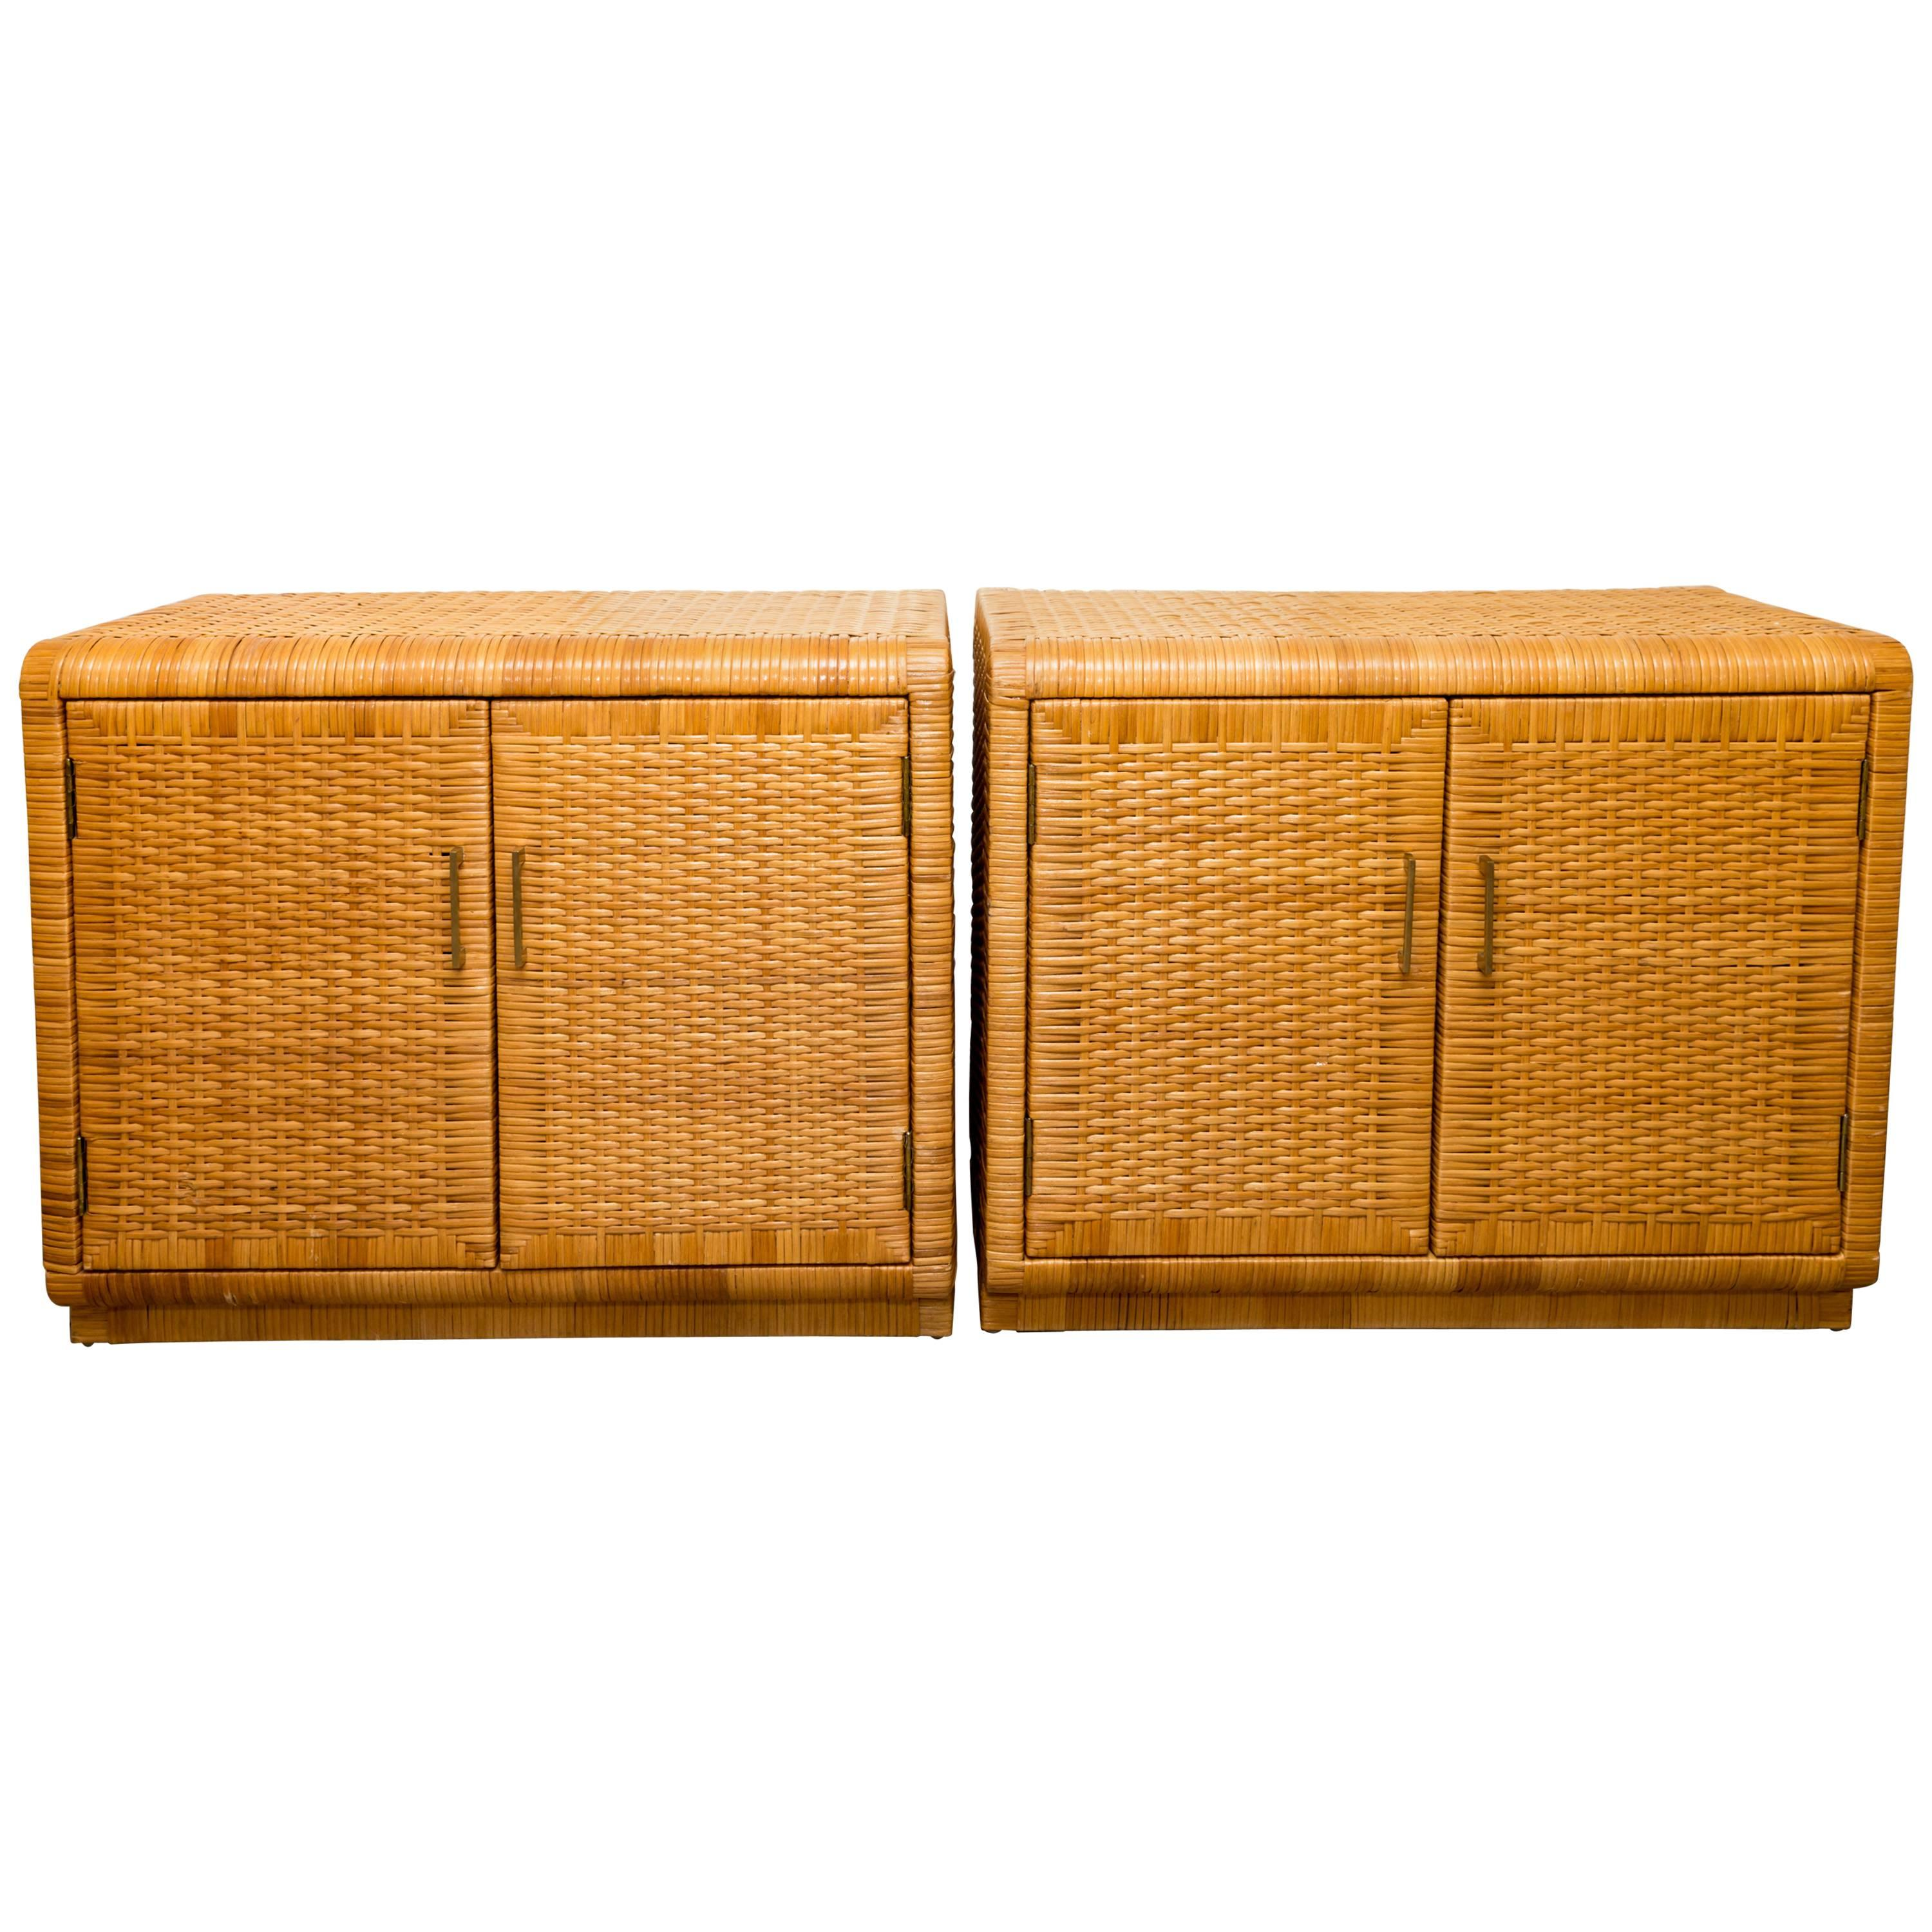 Pair Of Rattan Cabinets With Interior Glass Shelf And Brass Detail For Sale